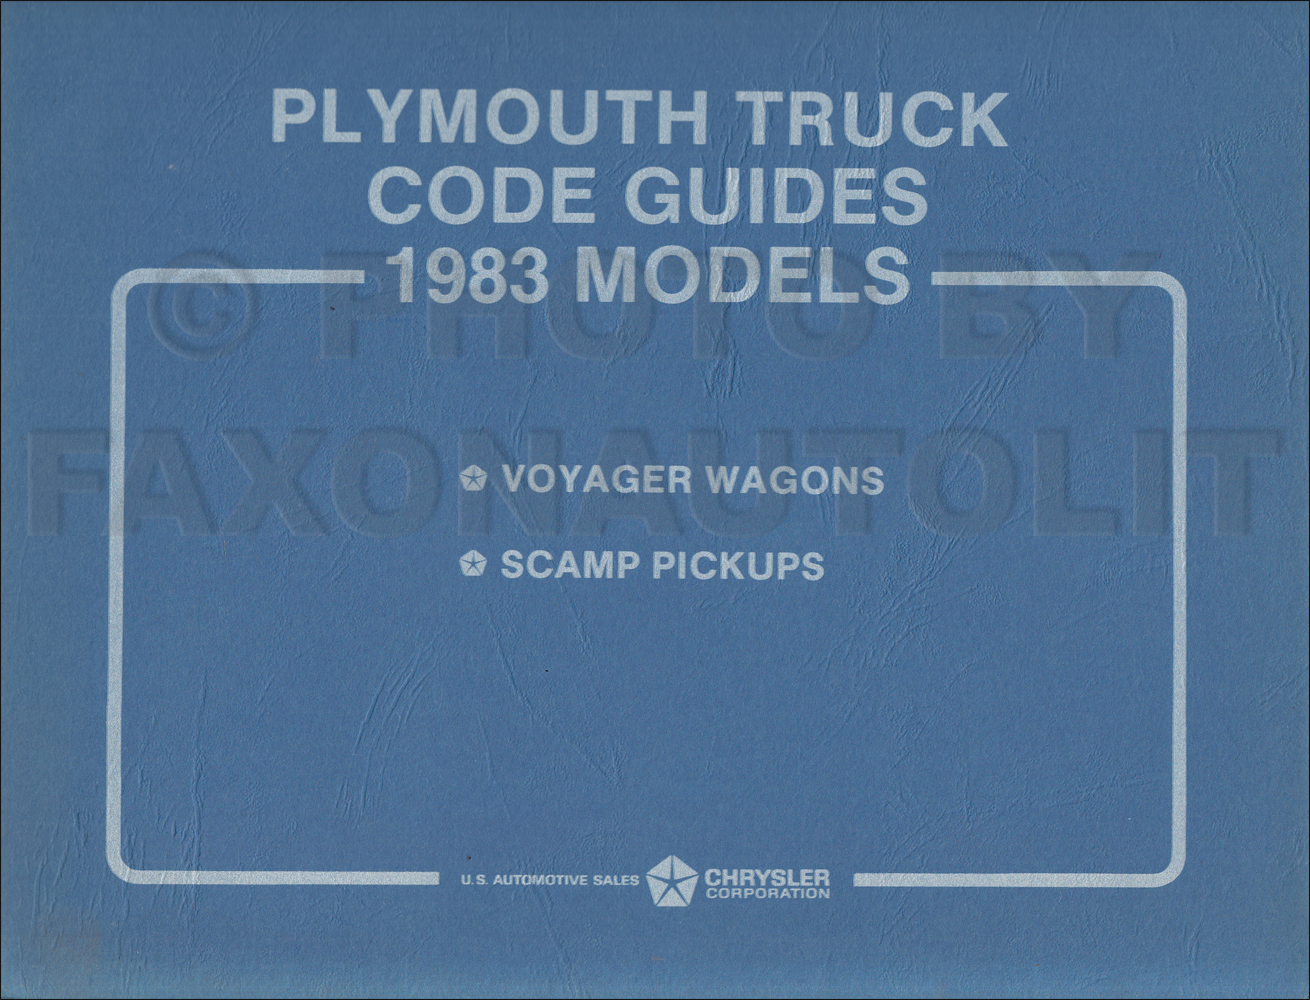 1983 Plymouth Truck Ordering Code Guide Original